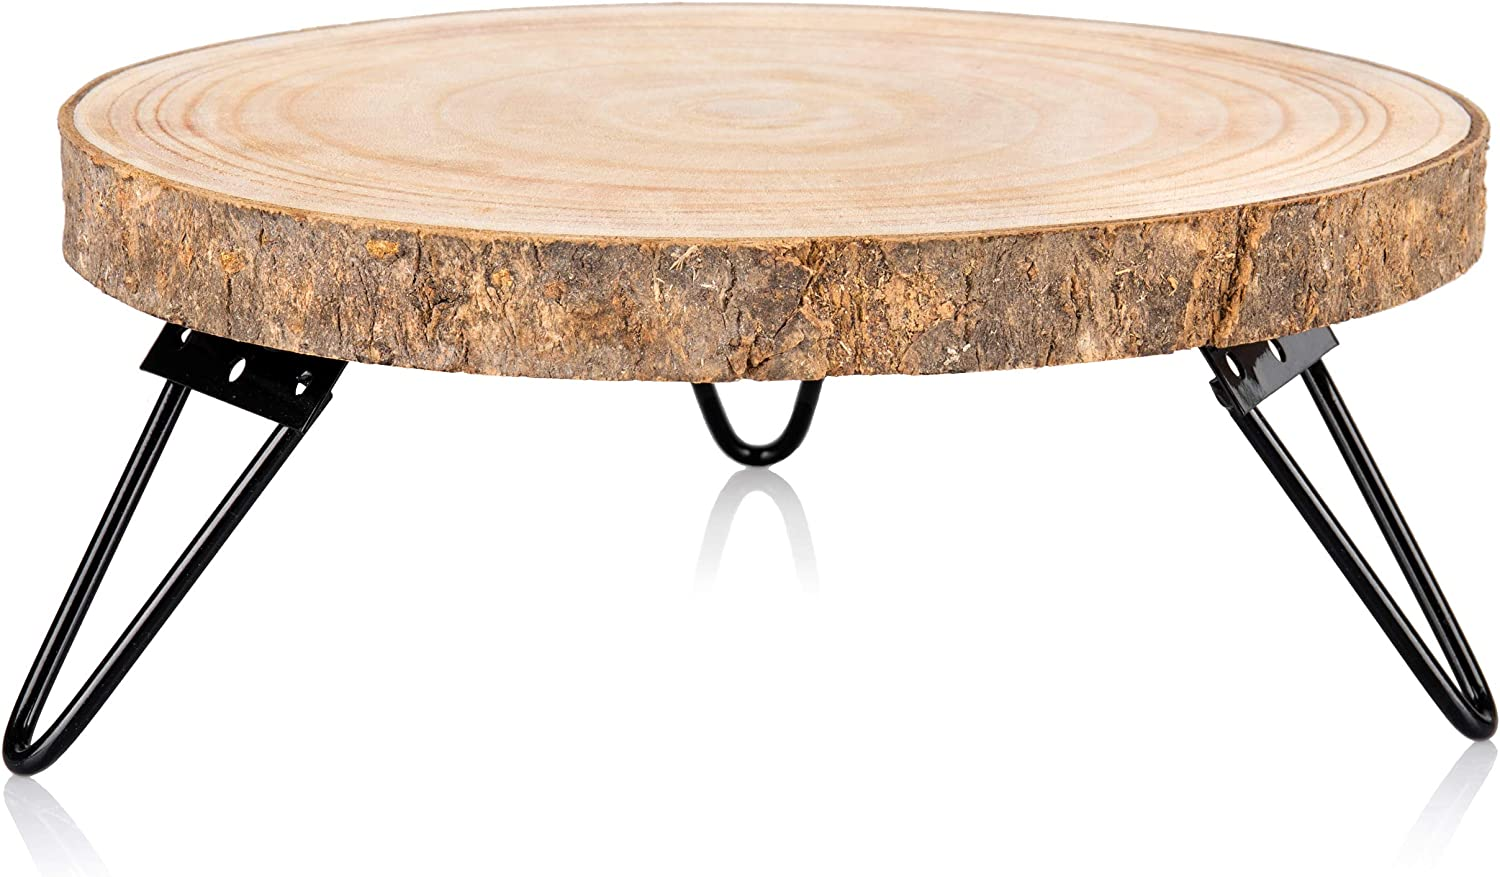 Timber Tree 10 inch Wood Cake Stand for Dessert Table - Round Rustic Cake Holder Tray Wooden Serving Platter Pedestal Centerpiece Decoration with Sturdy Hinged Metal Legs for Wedding Cakes